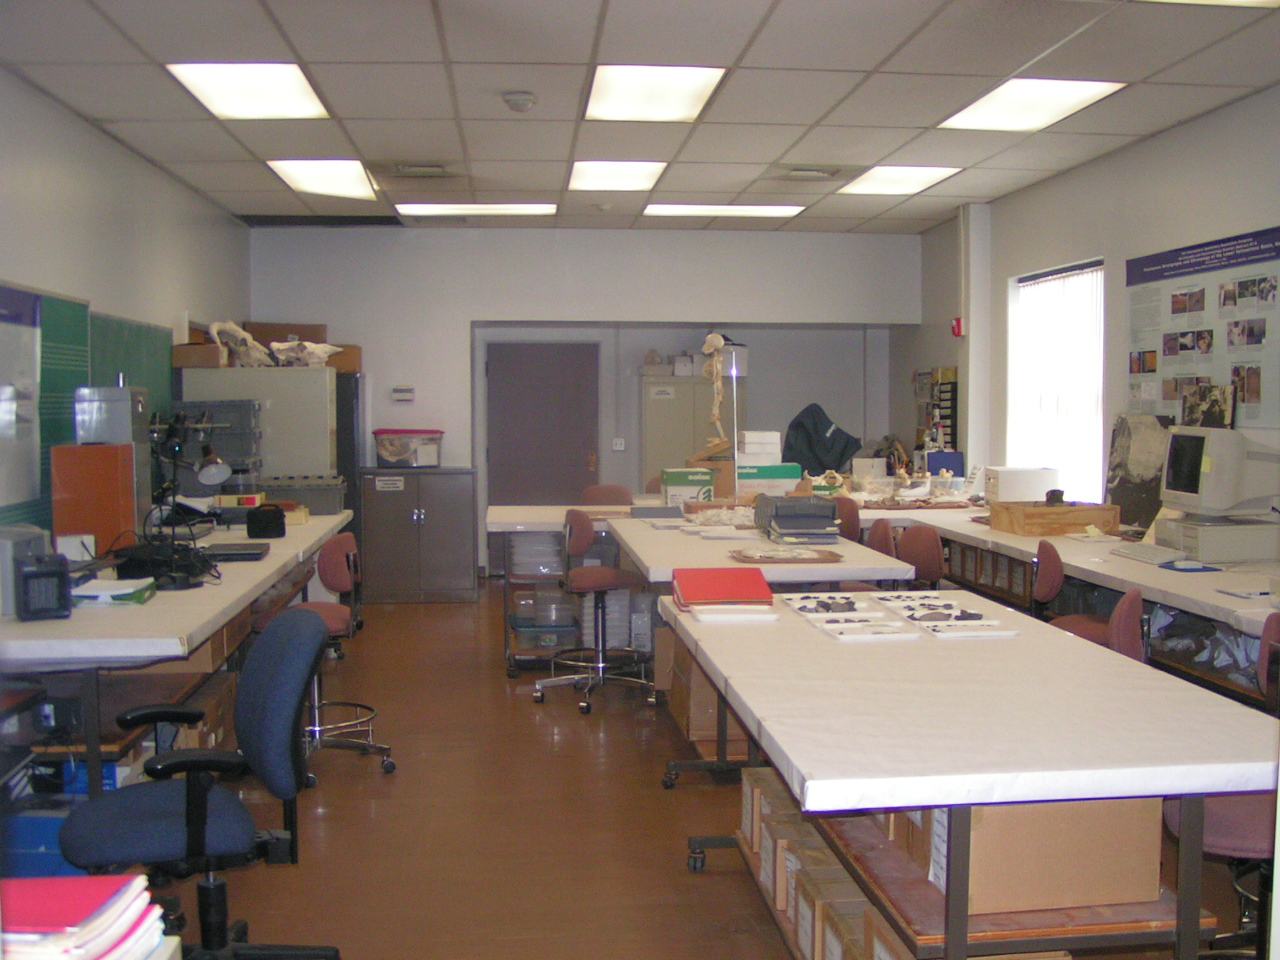 Photo of lab with artifacts layed out on the lab table.